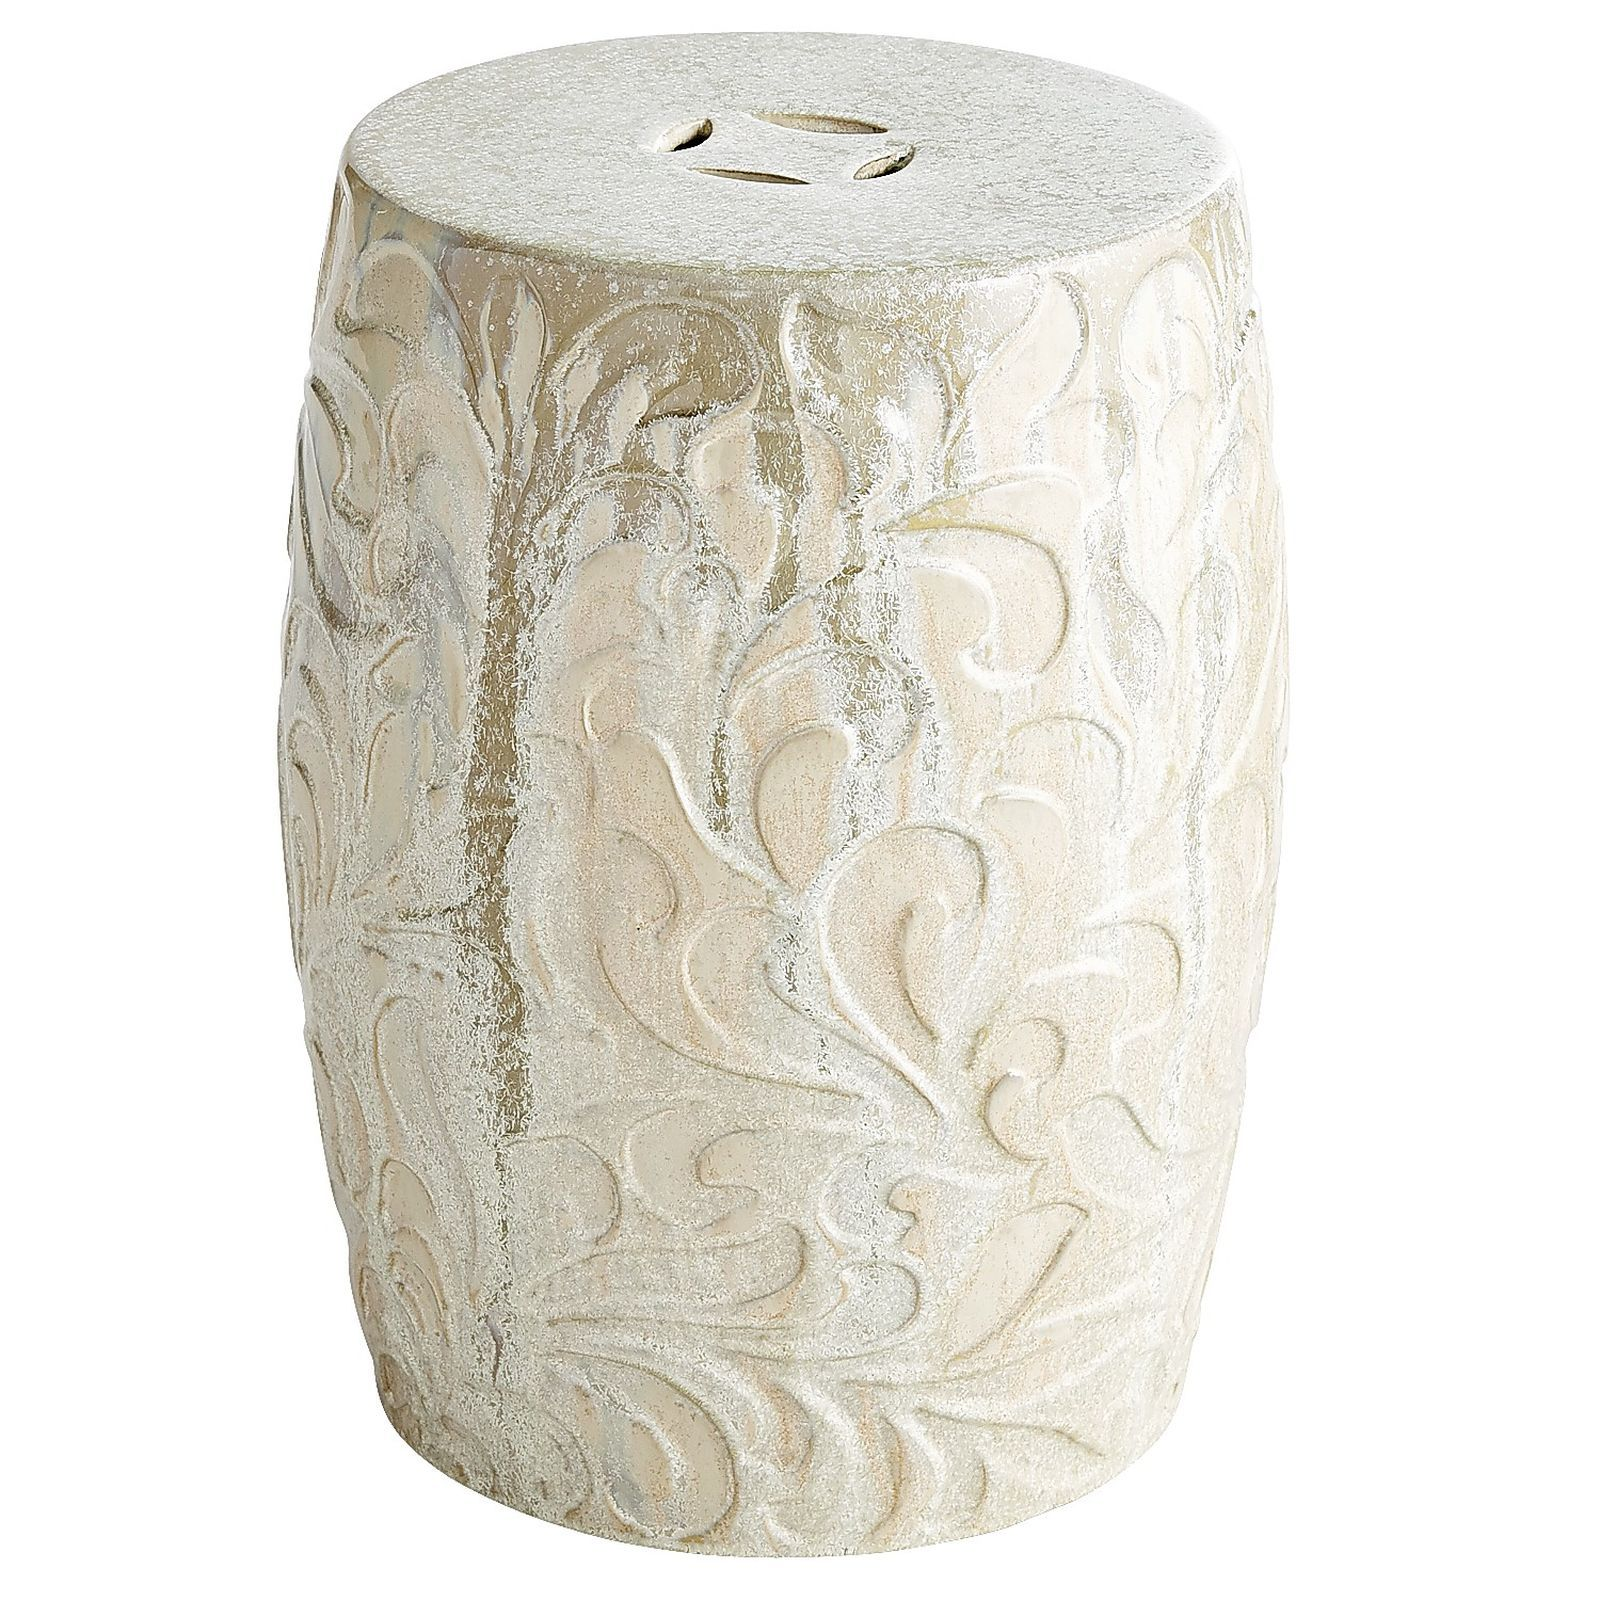 in of carehomedecor space limited well ceramic garden fits stool you